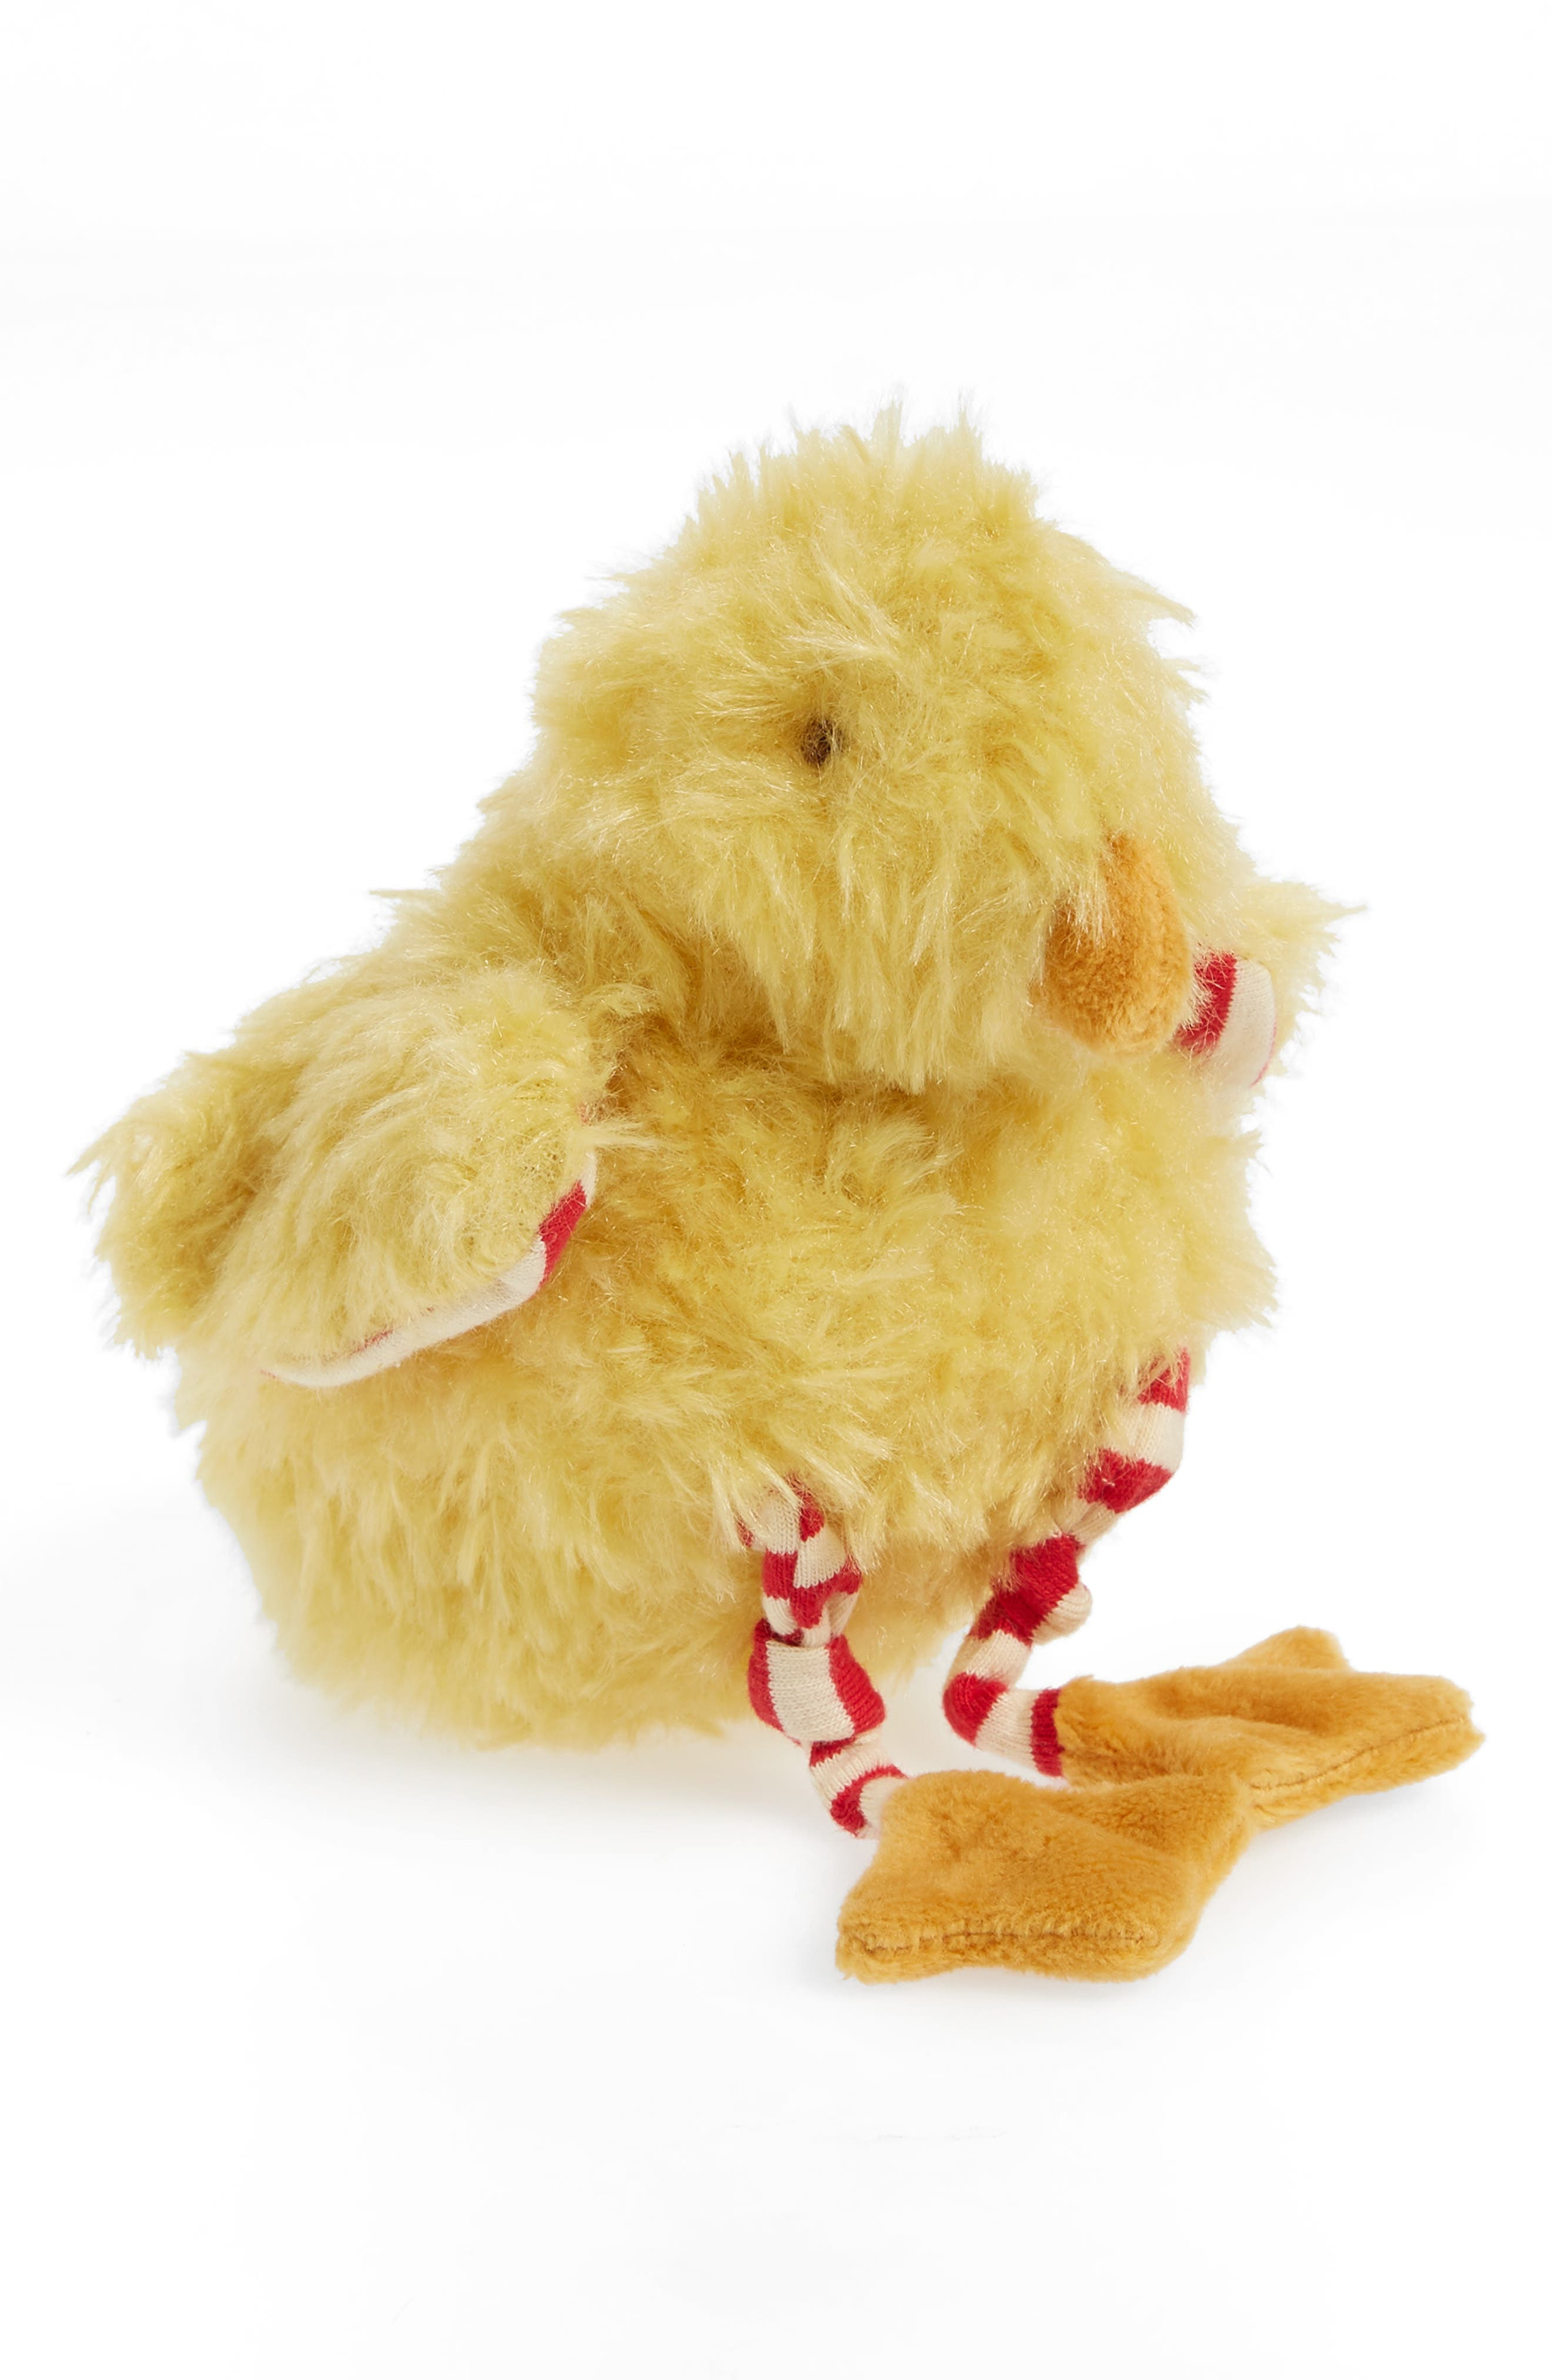 Clucky Chick Stuffed Animal,                             Main thumbnail 1, color,                             Mustard Yellow